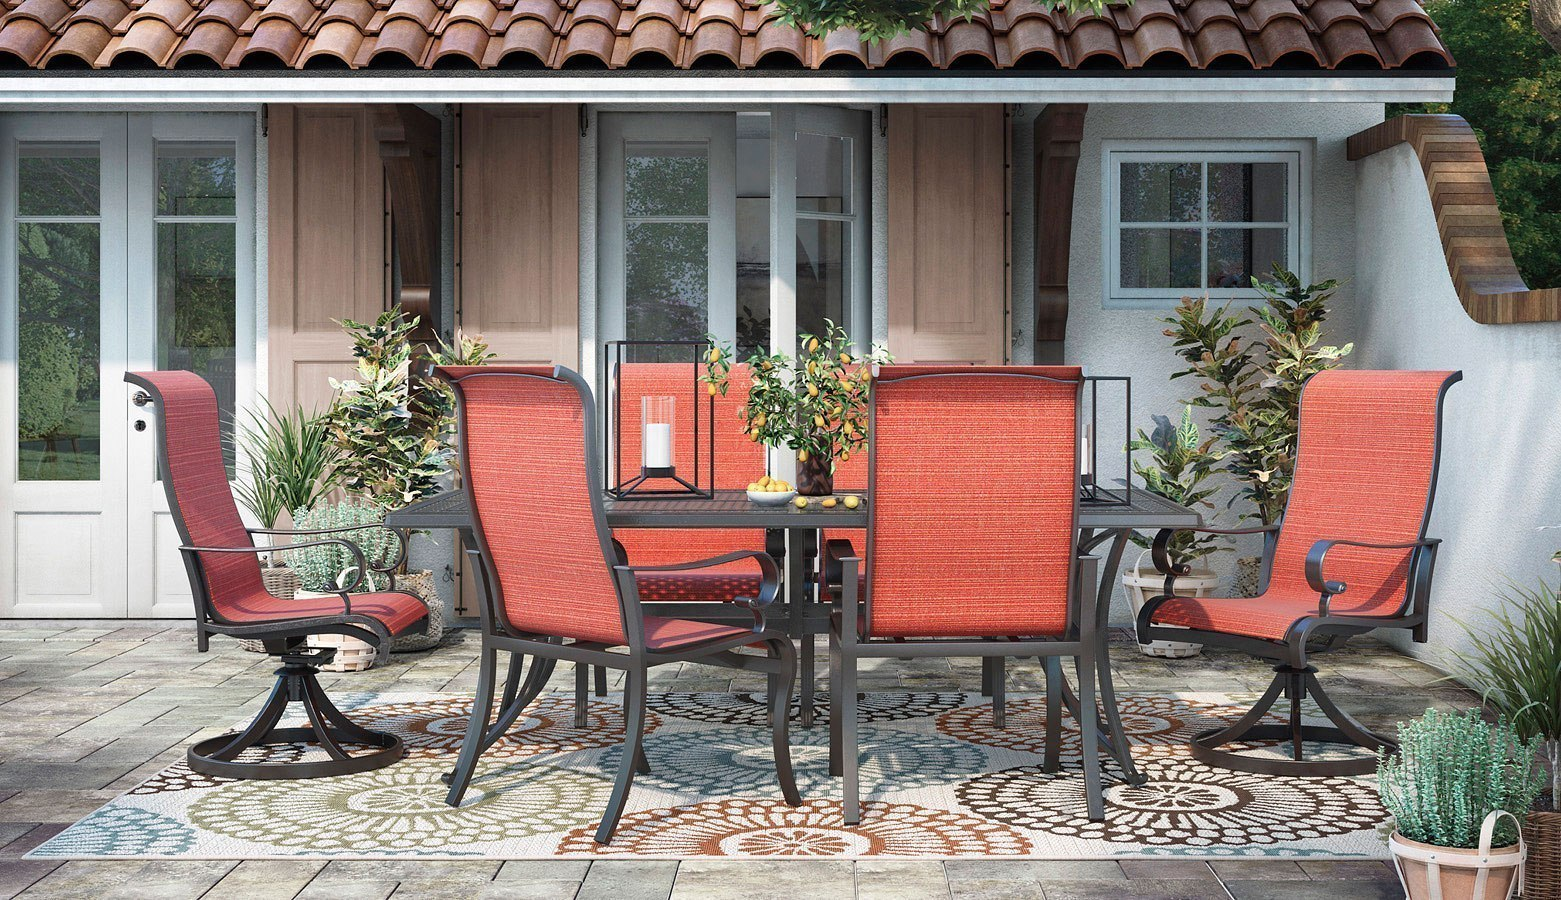 Burnella Outdoor Rectangular Dining Set w/ Apple Town Chairs